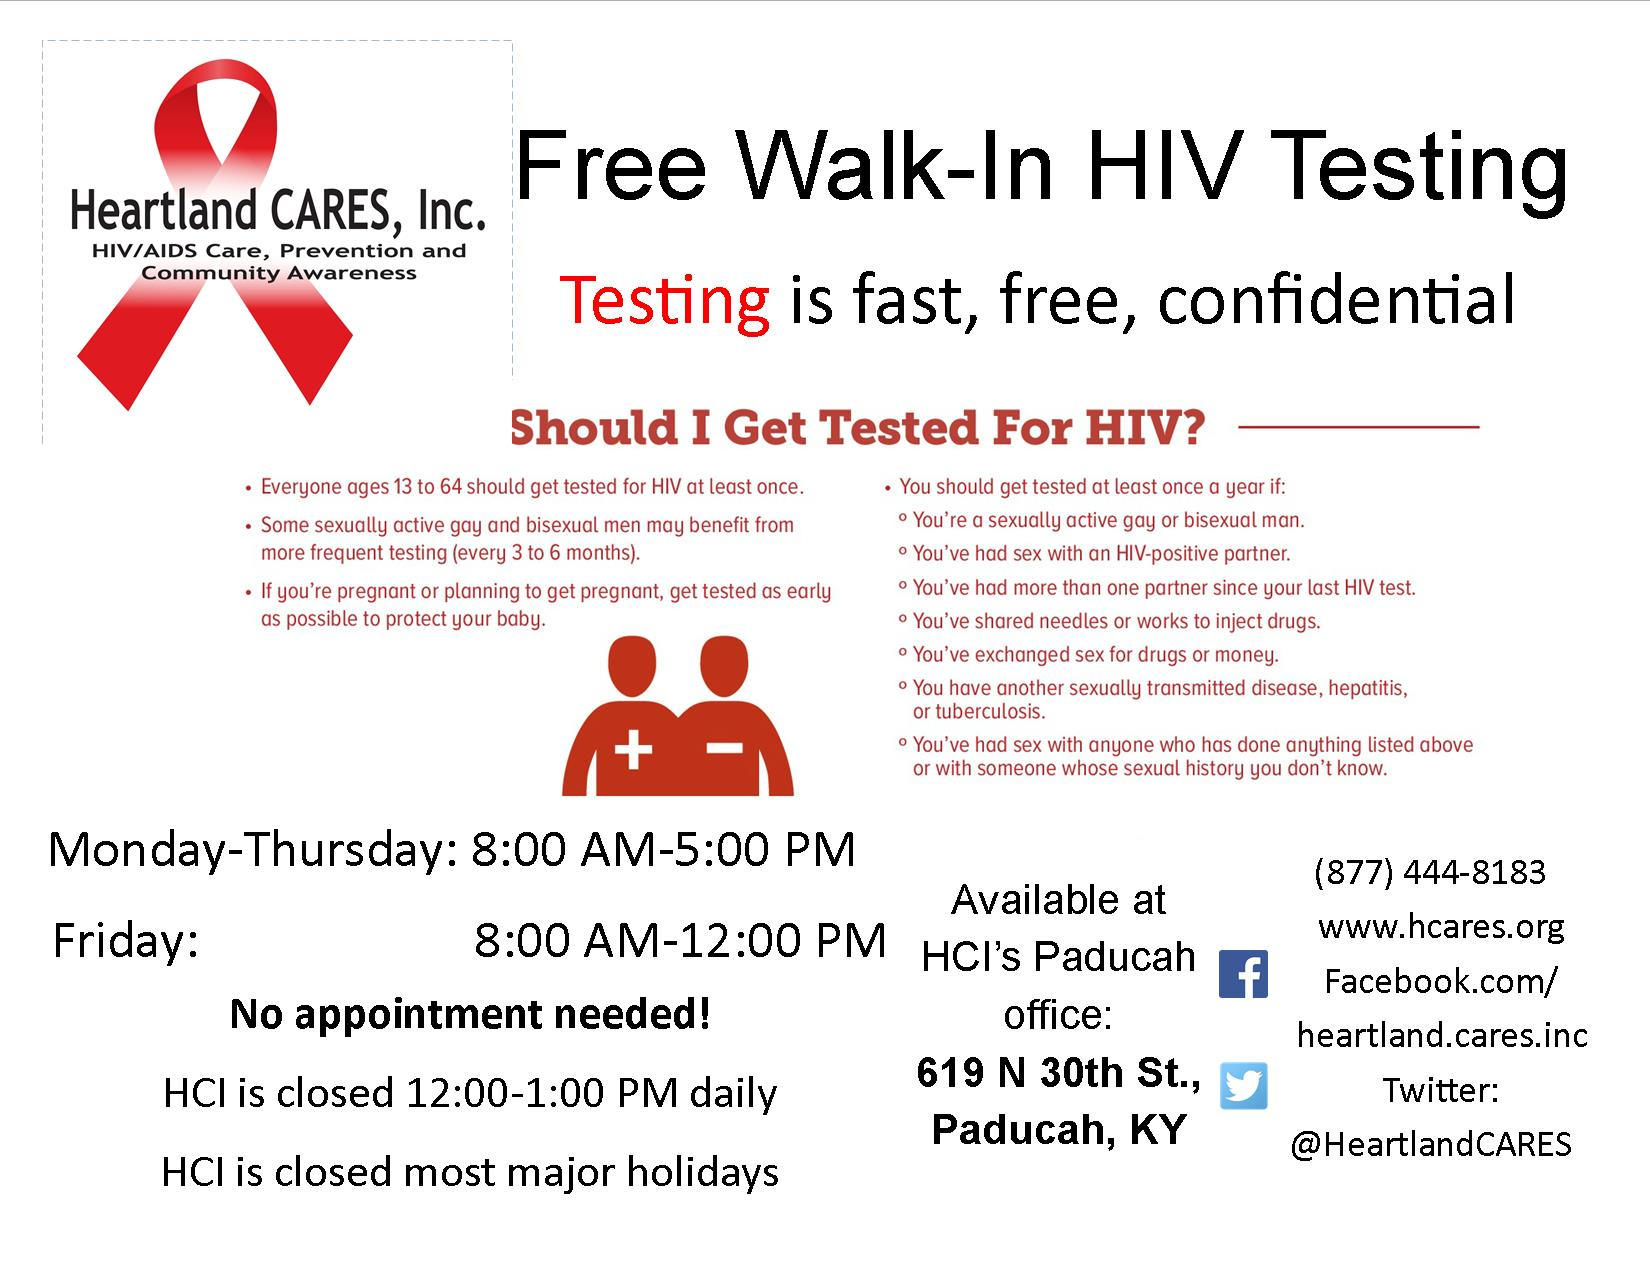 frequently asked questions about hiv testing | heartland cares